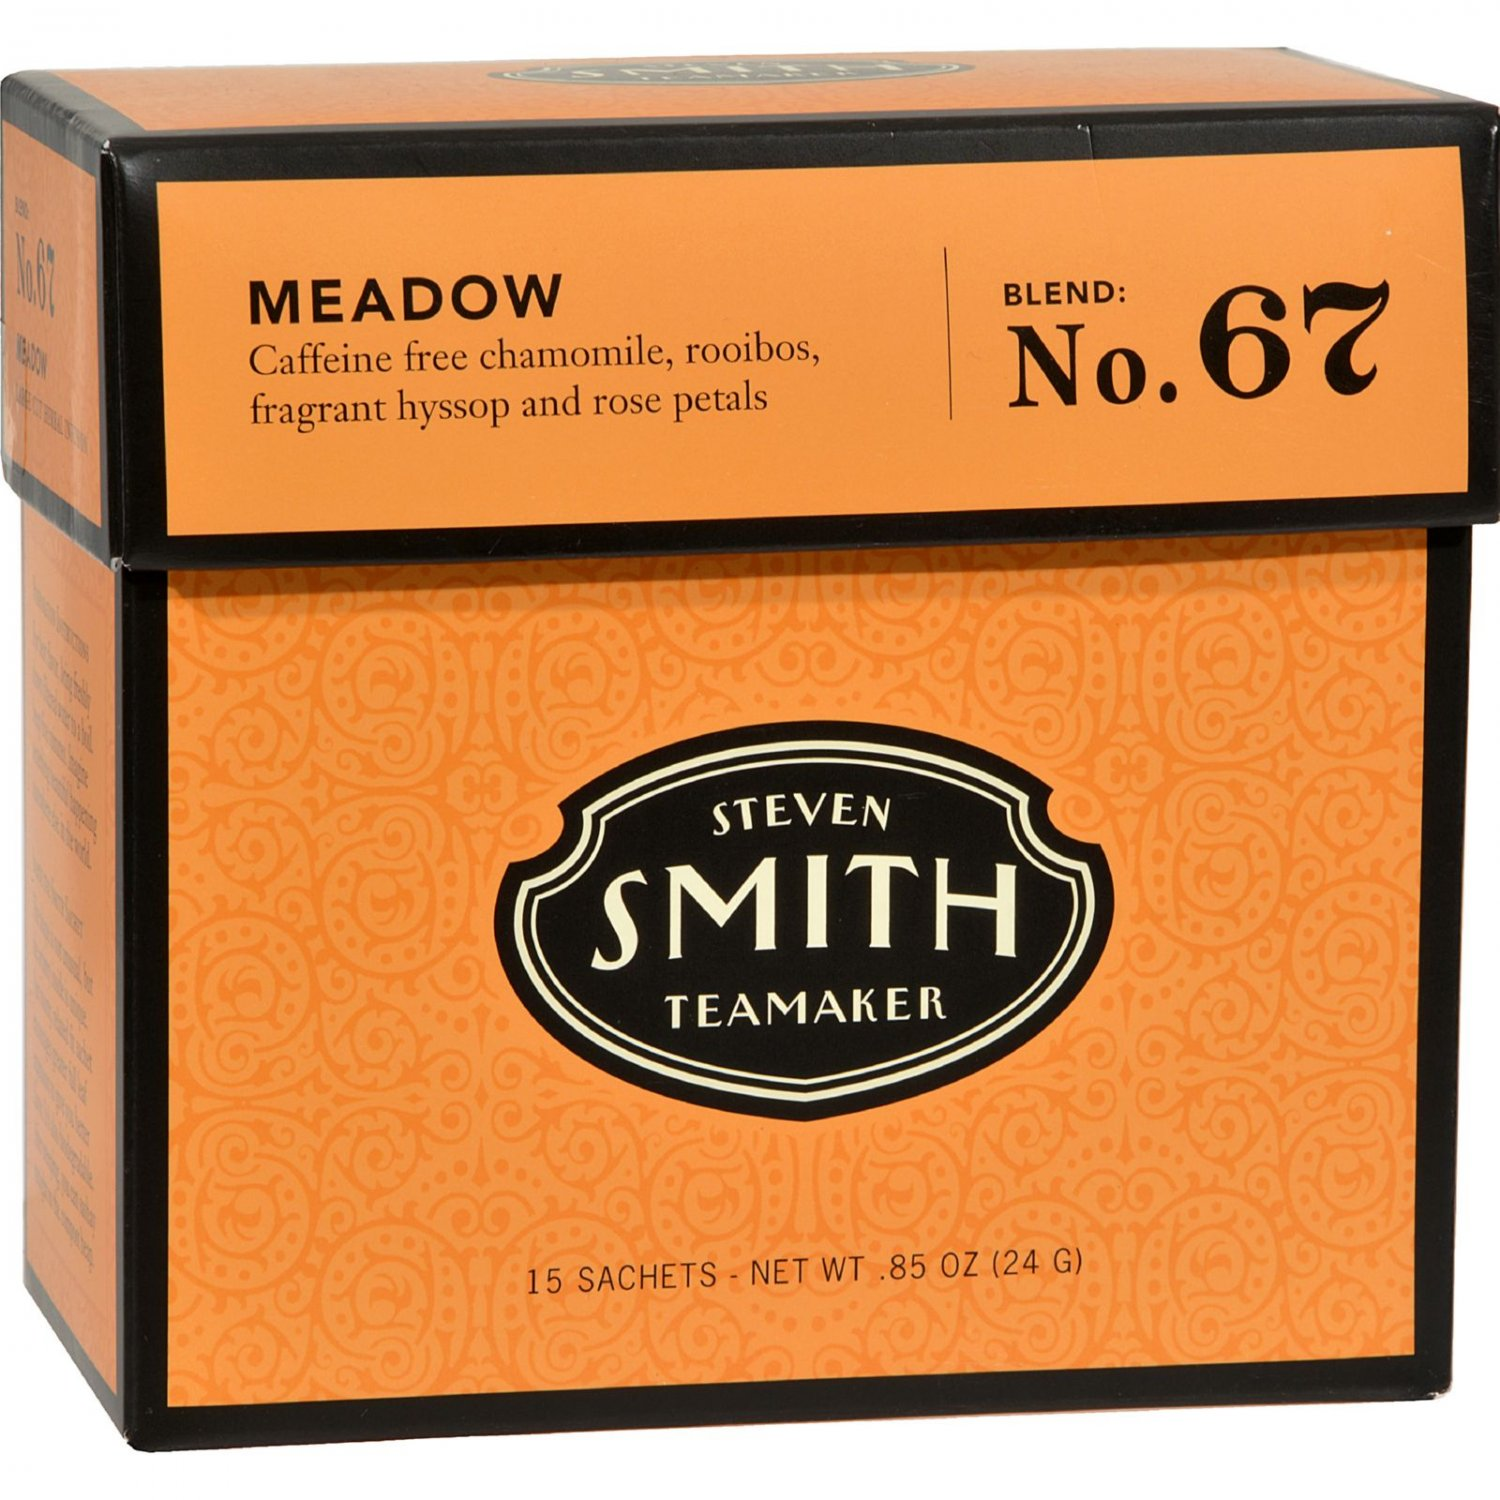 Smith Teamaker Herbal Tea - Meadow - Case of 6 - 15 Bags